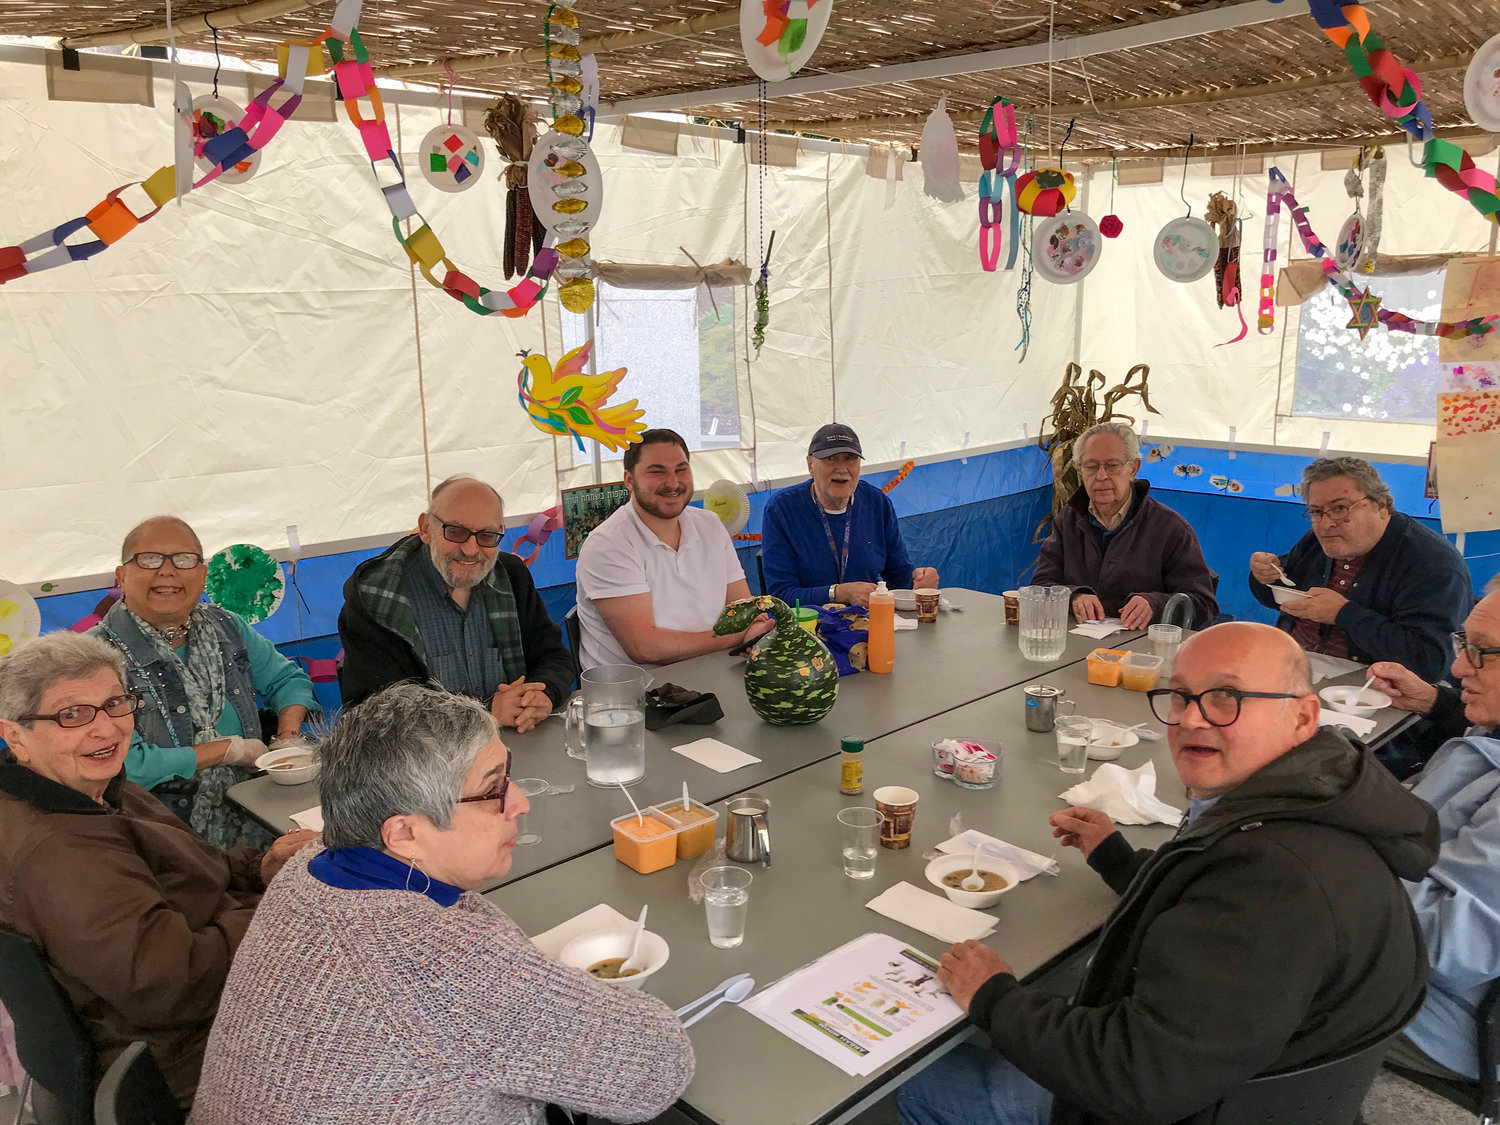 Guests of the Kosher Senior Cafe at the Dwares Jewish Community Center ate lunch in the sukkah.